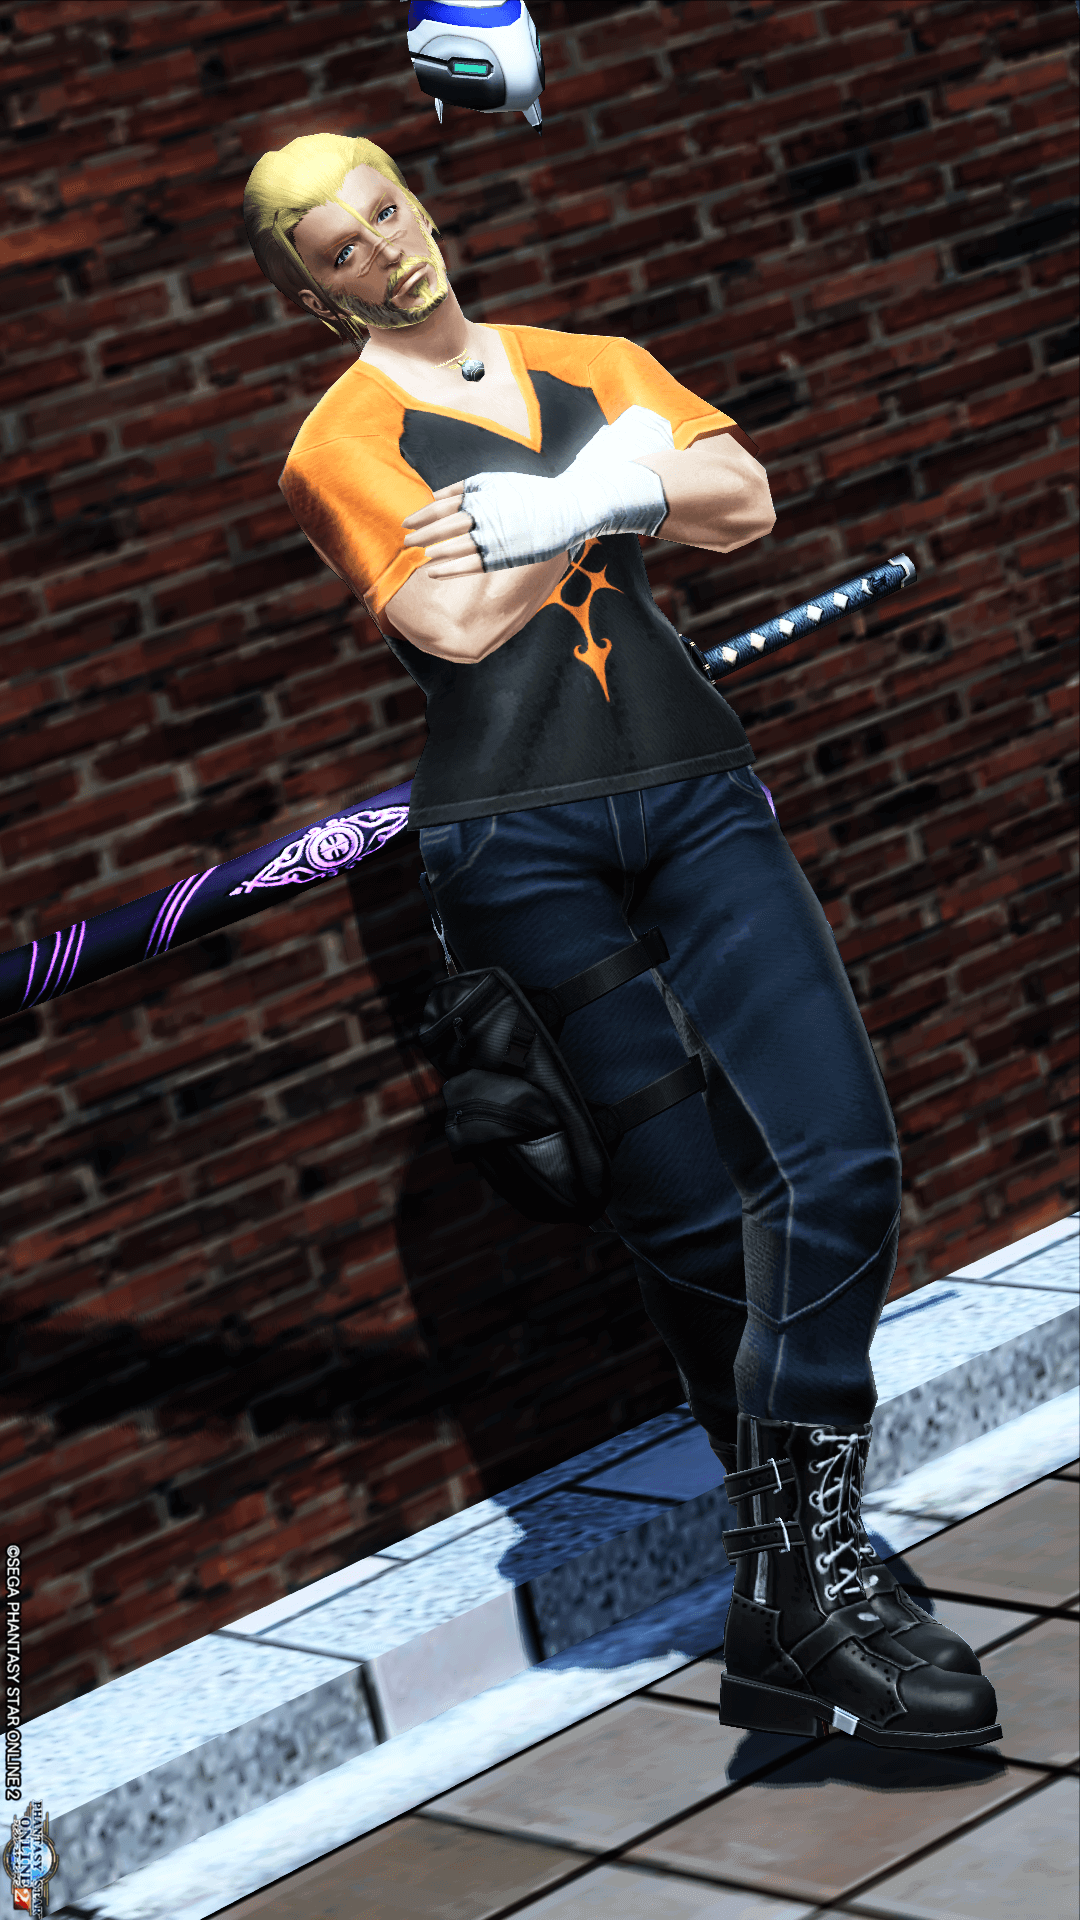 pso20160215_184924_007.png